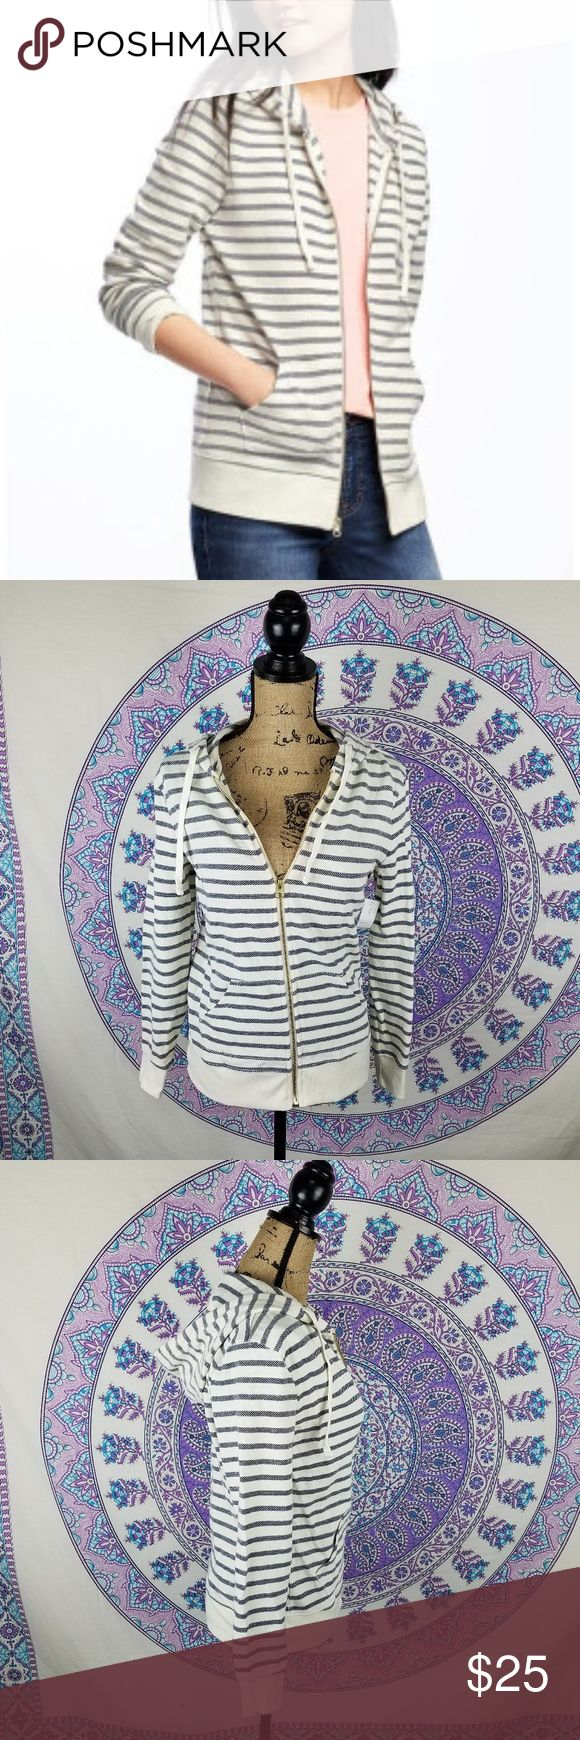 Old Navy Women's relaxed striped full-zip hoodie Women's Old Navy white and grey striped zip up hoodie, NWT, size XS, long sleeve, pockets, drawstring hoodie, gold zipper, Rib-knit hem,  Soft, medium-weight pique cotton blend, approximate measurements flat in inches bust 17 1/2 waist 16 1/2 length 24 1/2, Old Navy Women's relaxed striped full-zip hoodie Old Navy Tops Sweatshirts & Hoodies